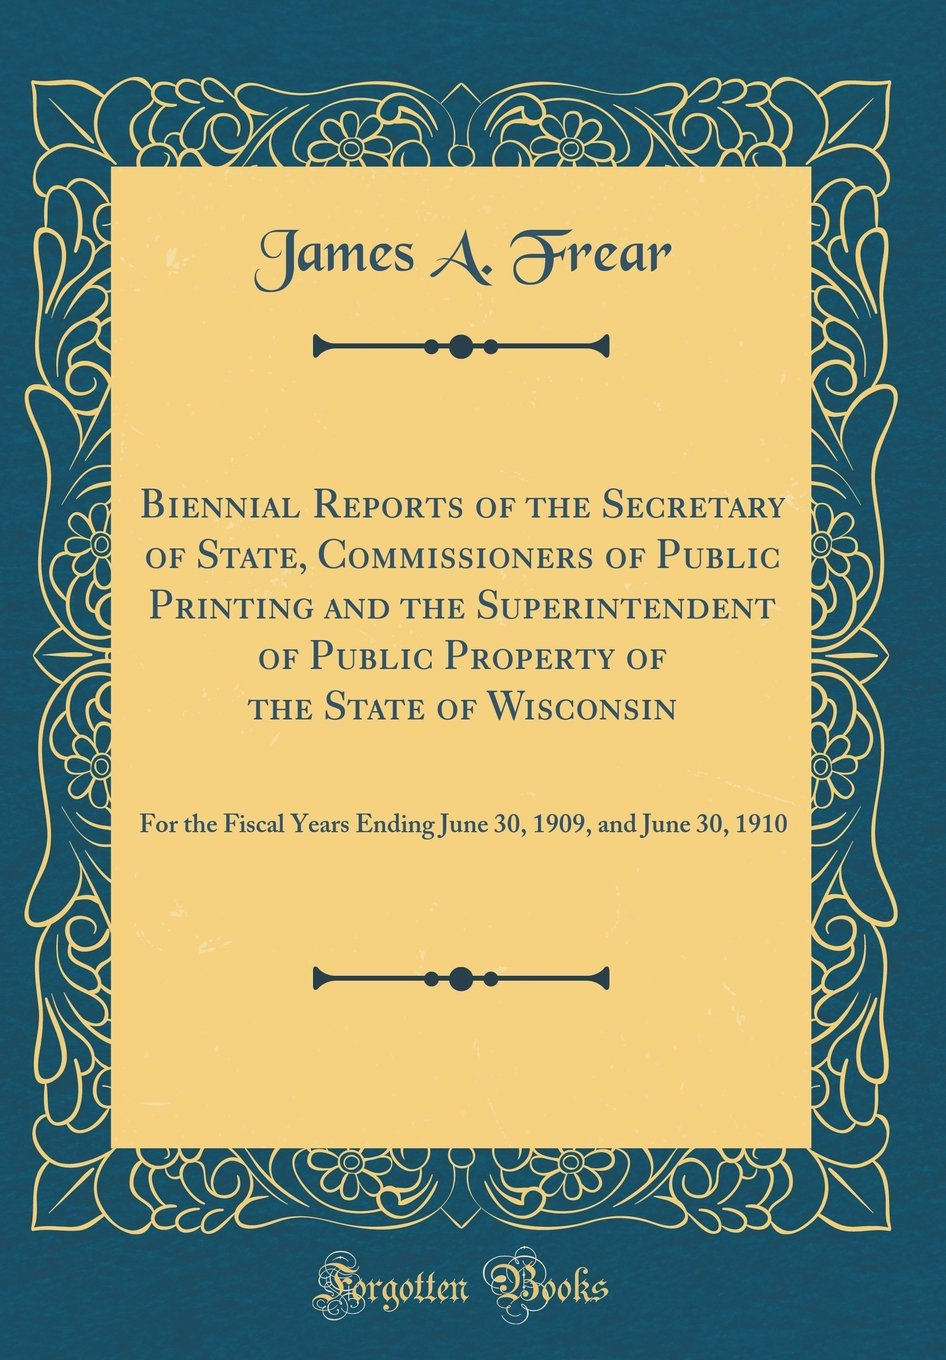 Download Biennial Reports of the Secretary of State, Commissioners of Public Printing and the Superintendent of Public Property of the State of Wisconsin: For ... 30, 1909, and June 30, 1910 (Classic Reprint) PDF